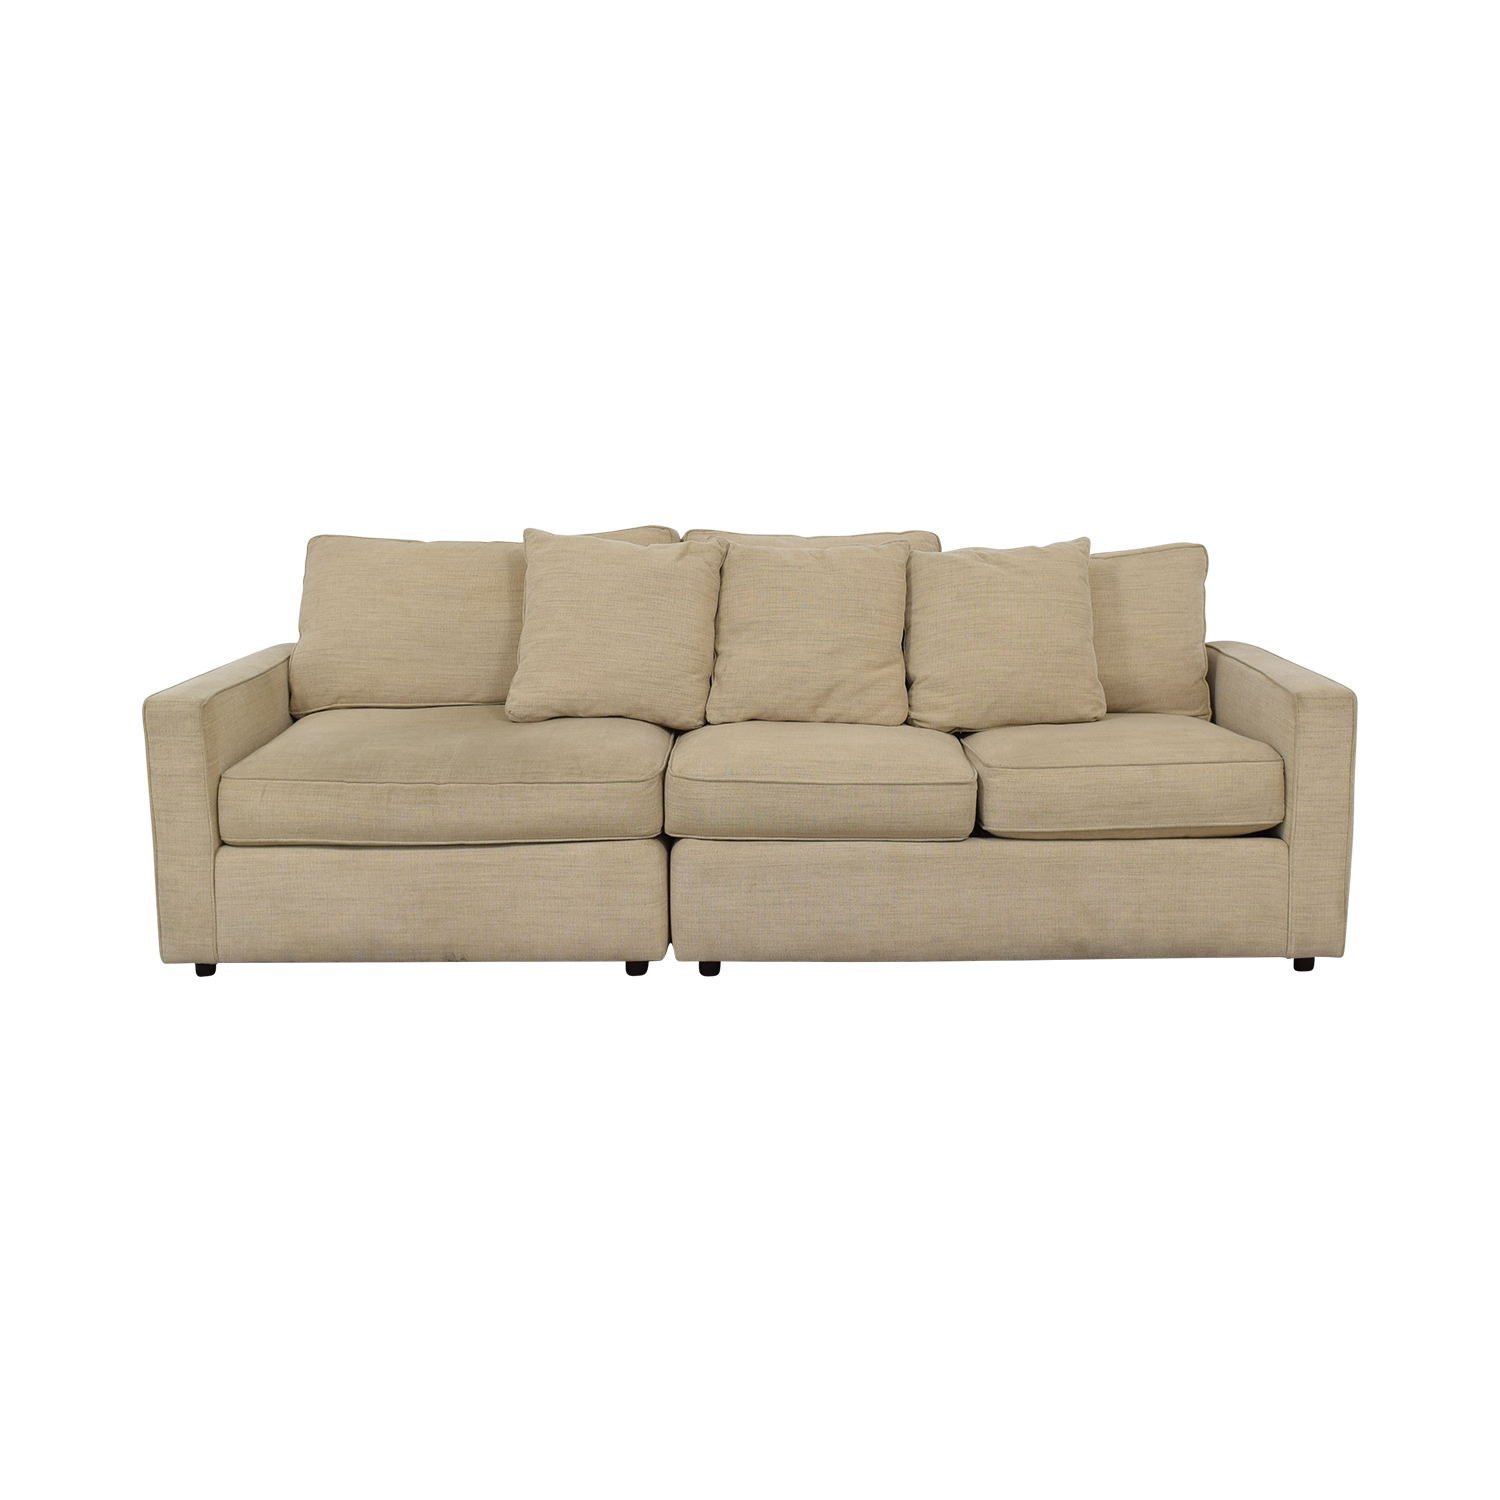 Room & Board Room & Board York Beige Three-Cushion Sofa